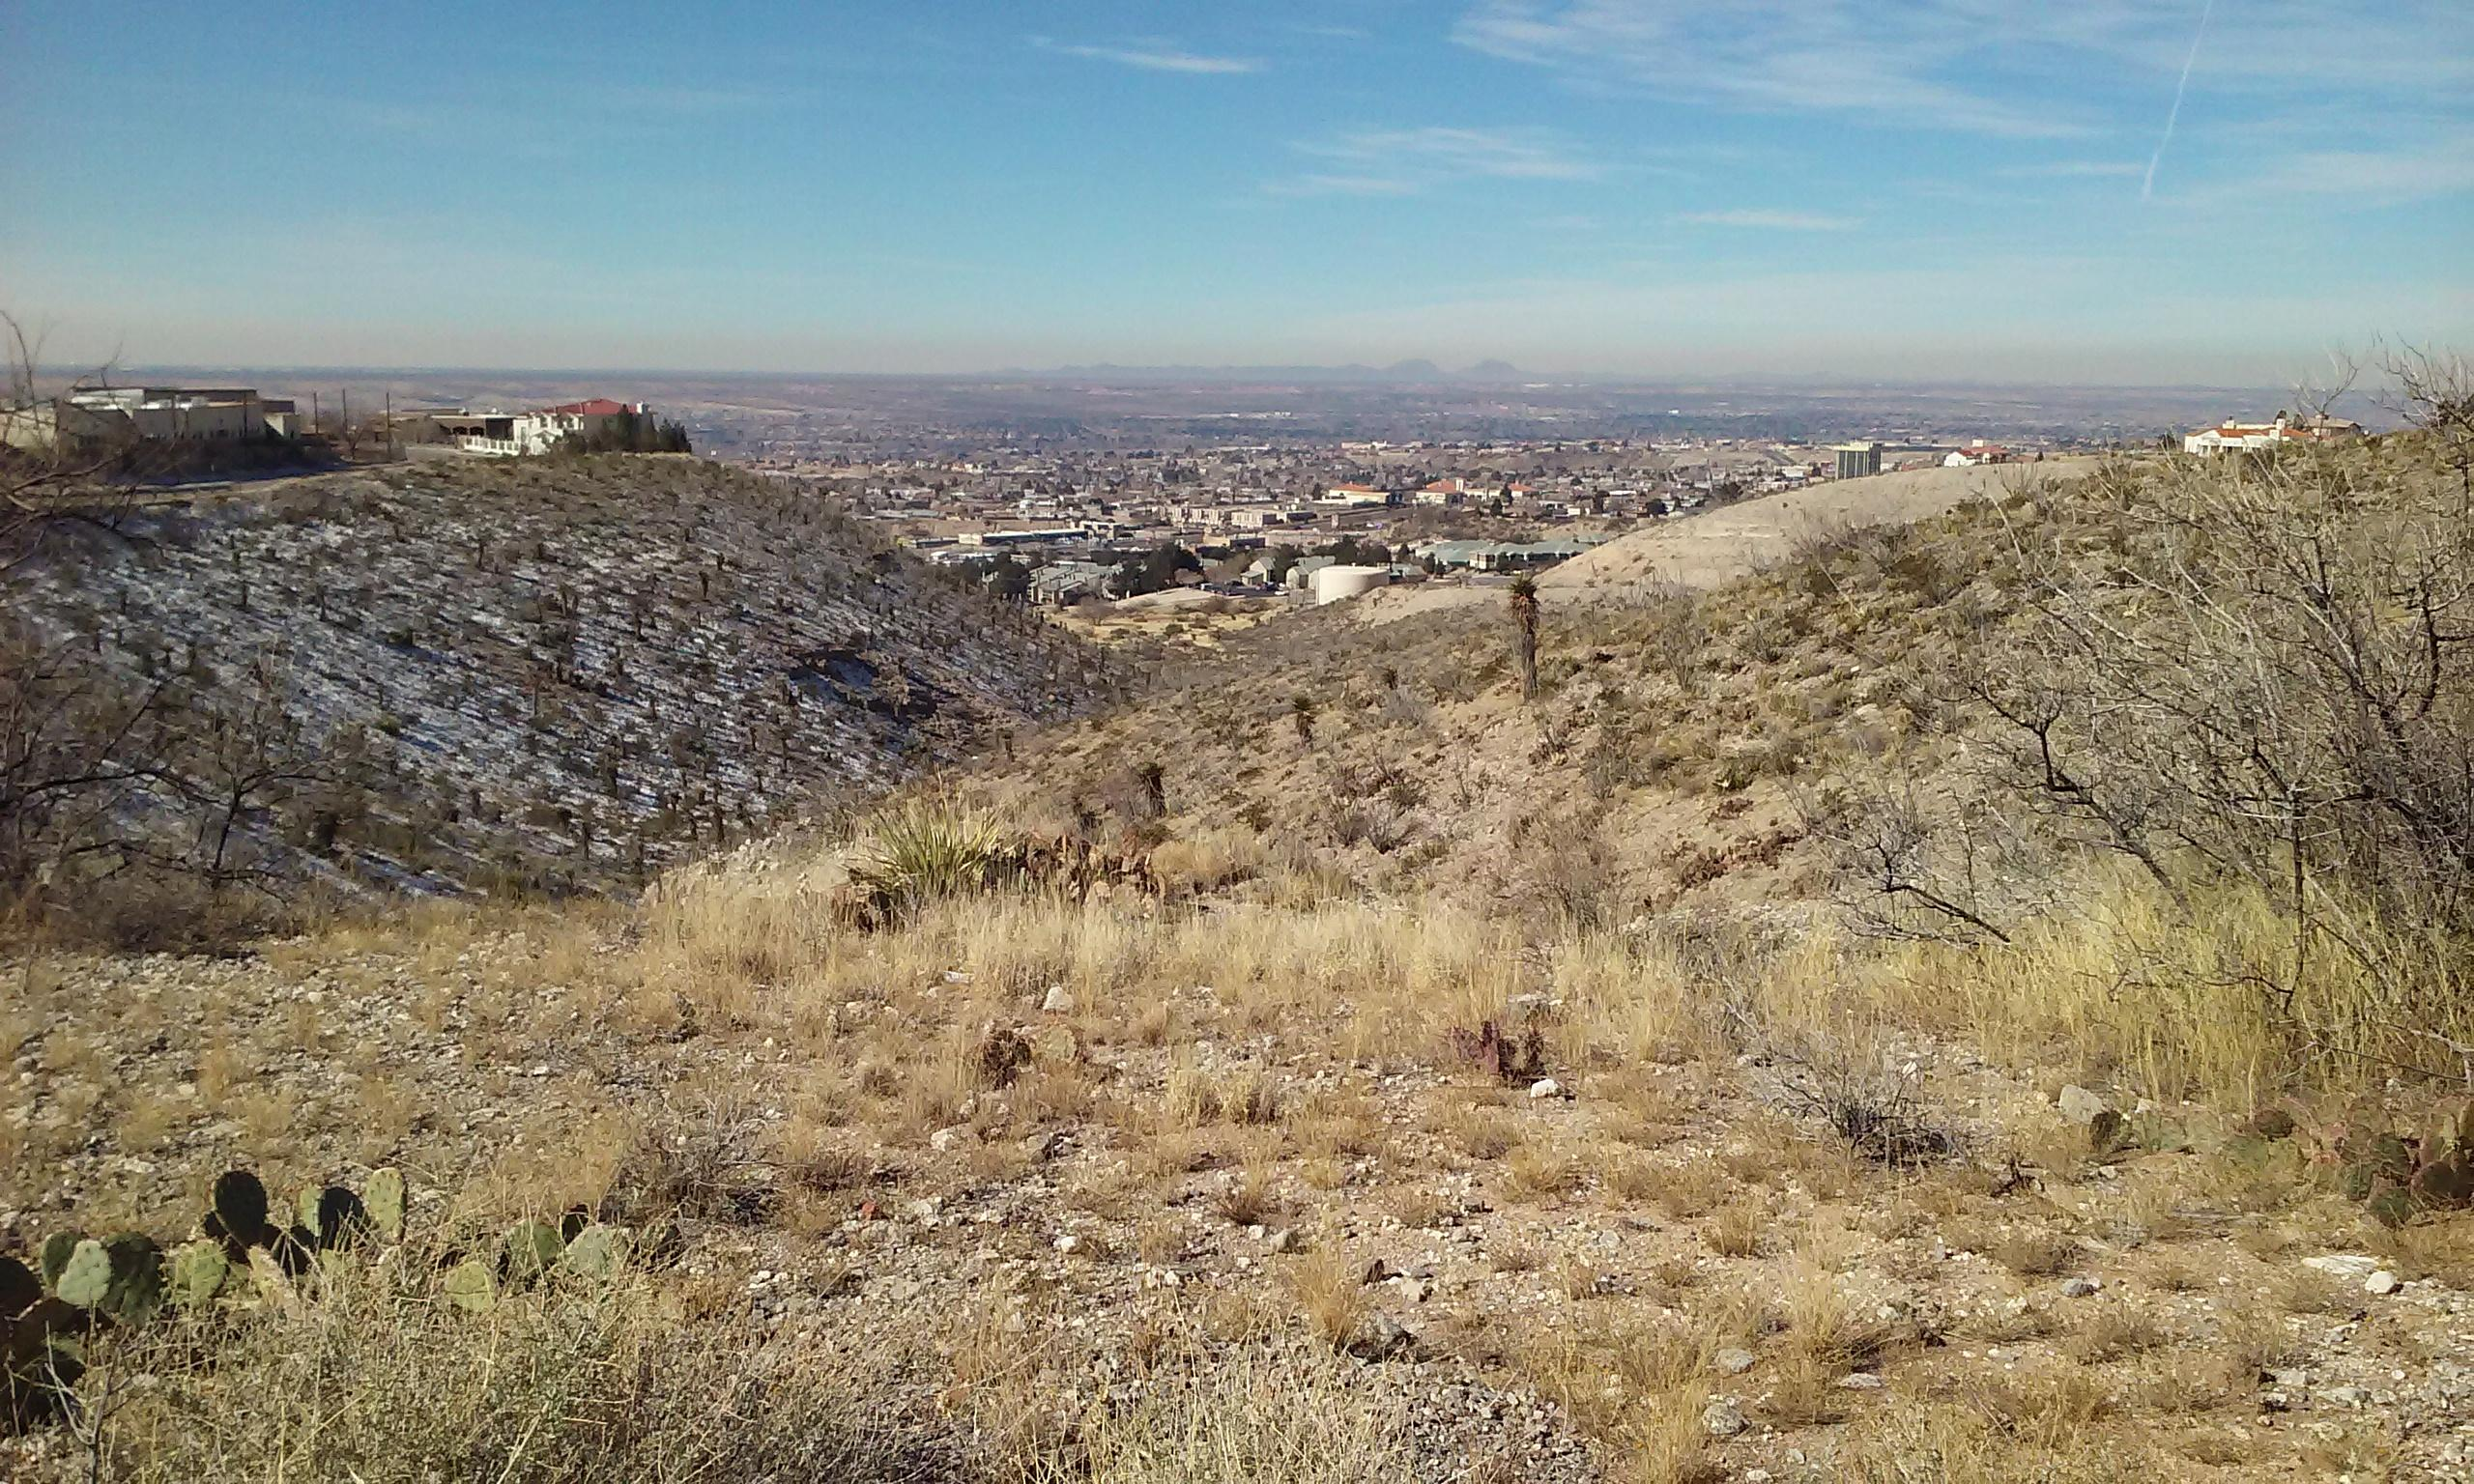 A distant view in El Paso